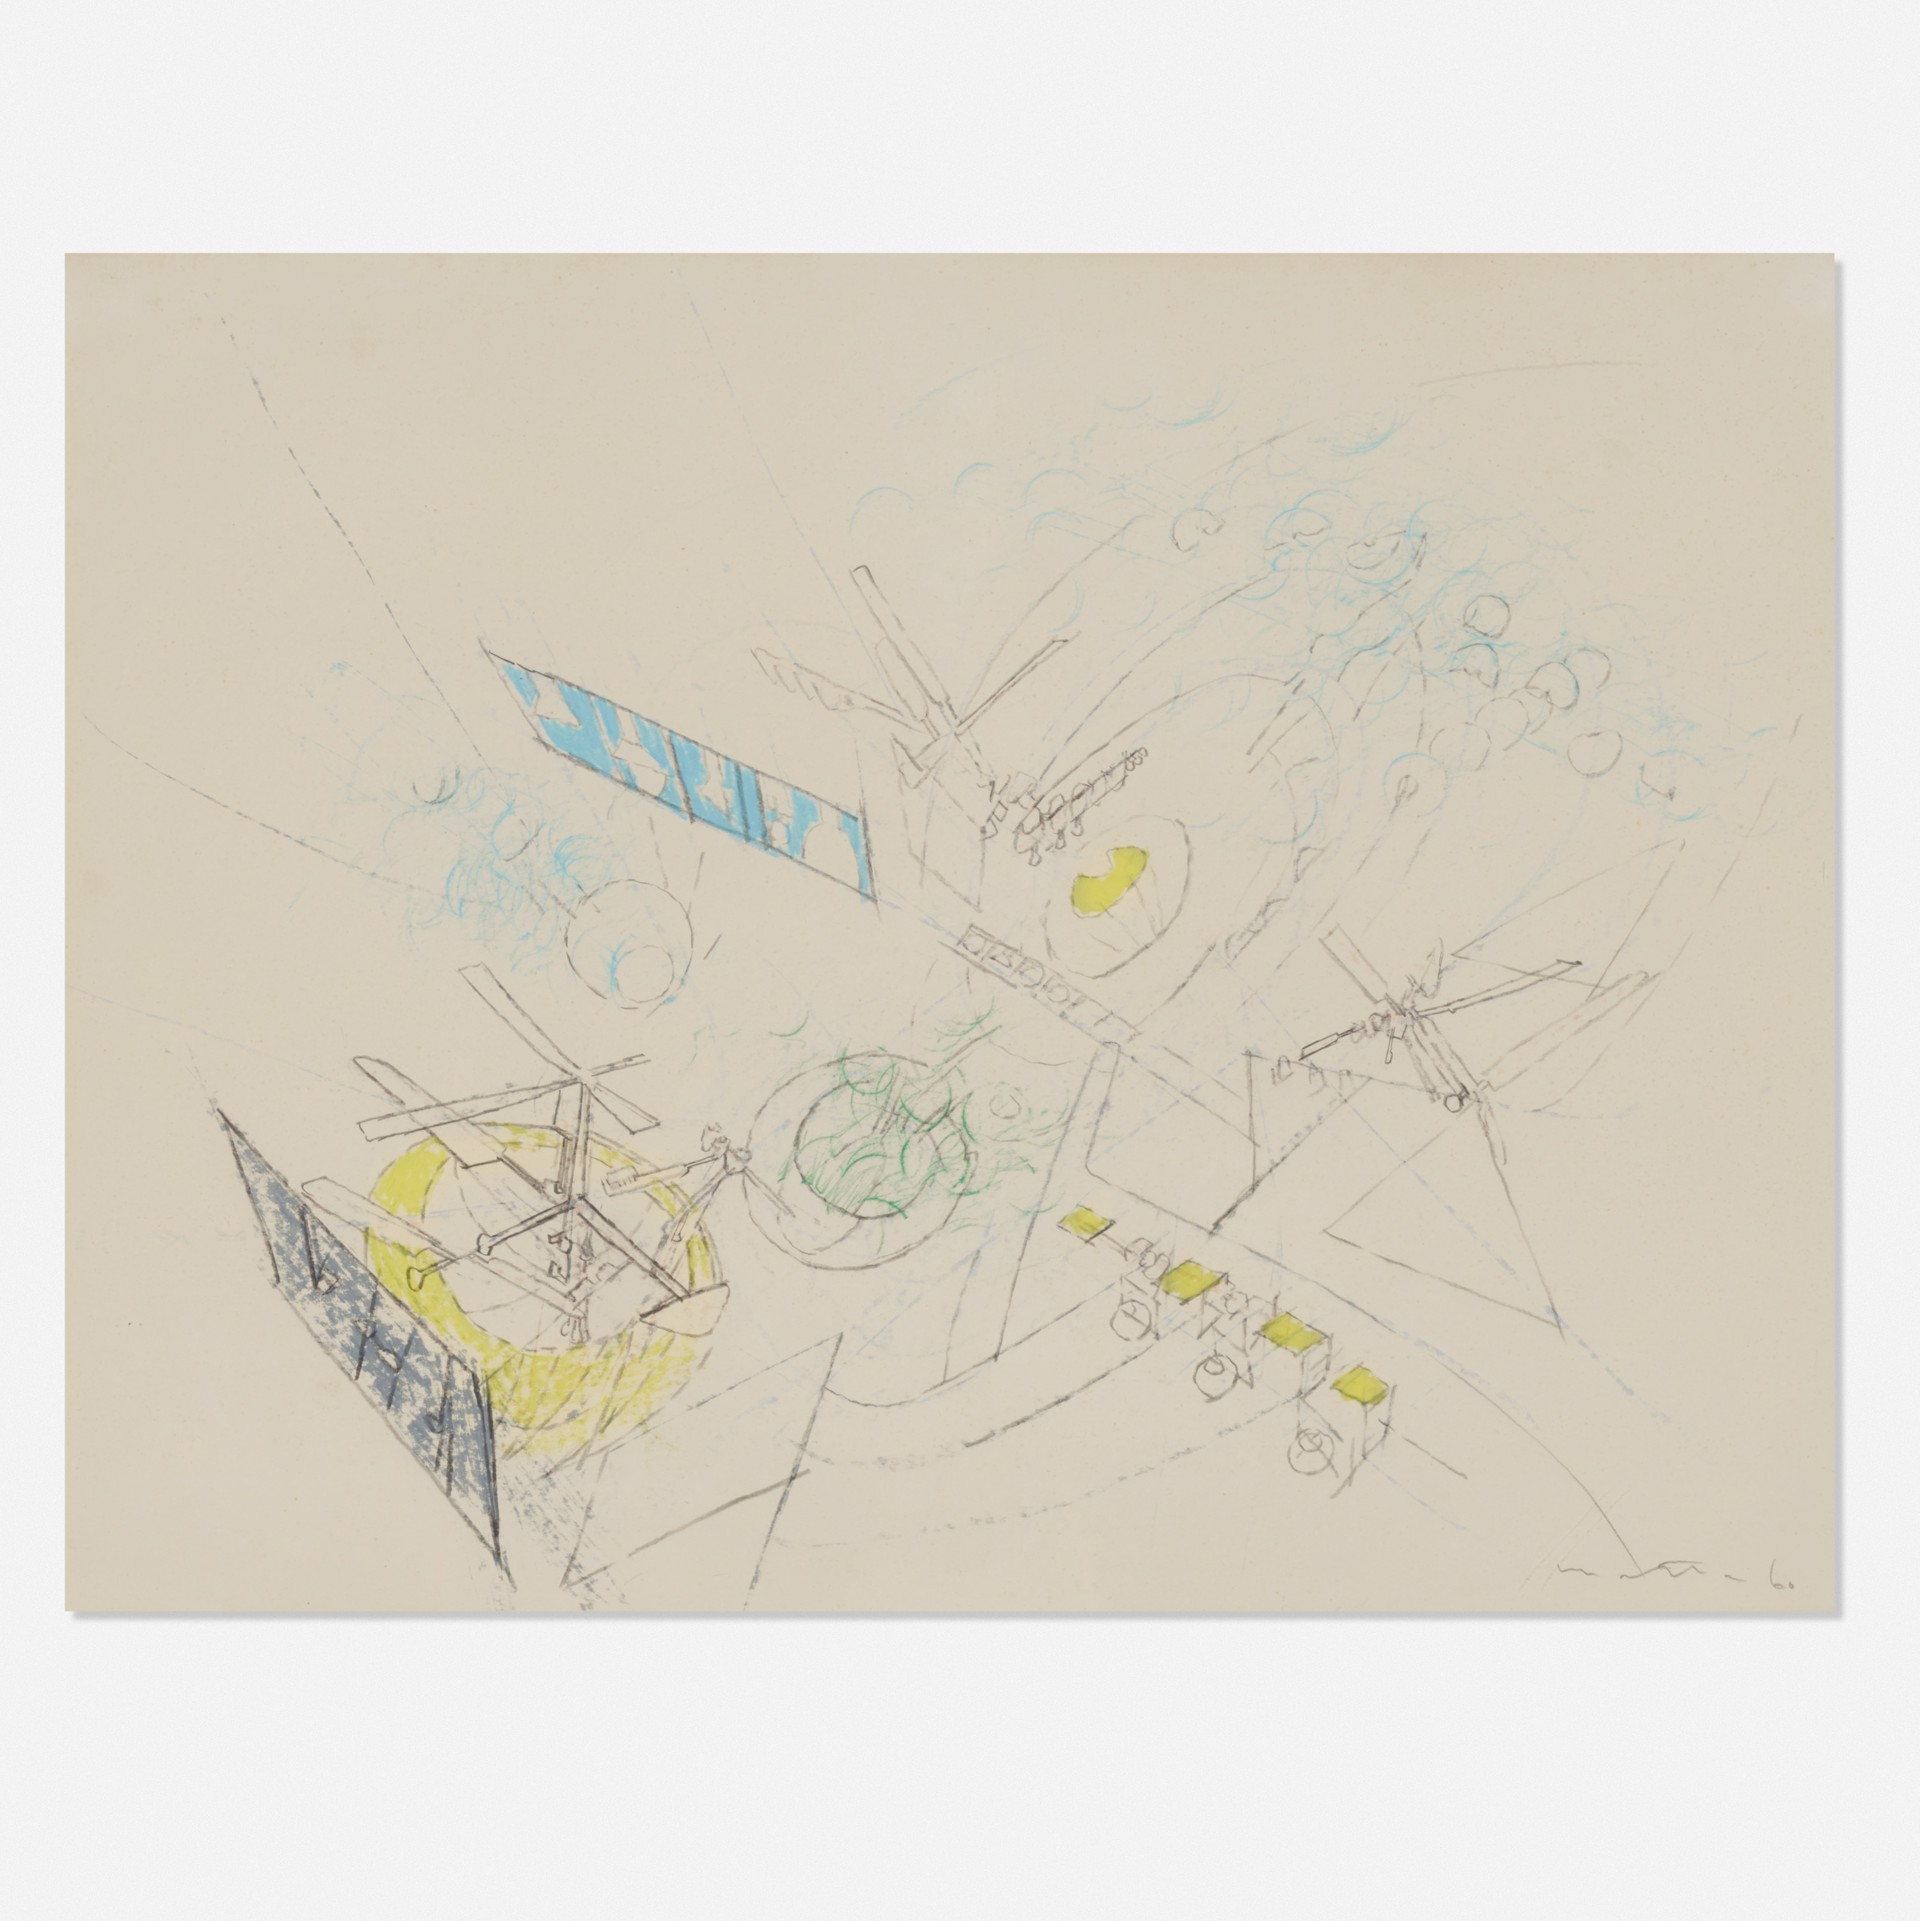 Study for a painting by Roberto Matta (1911 - 2002)